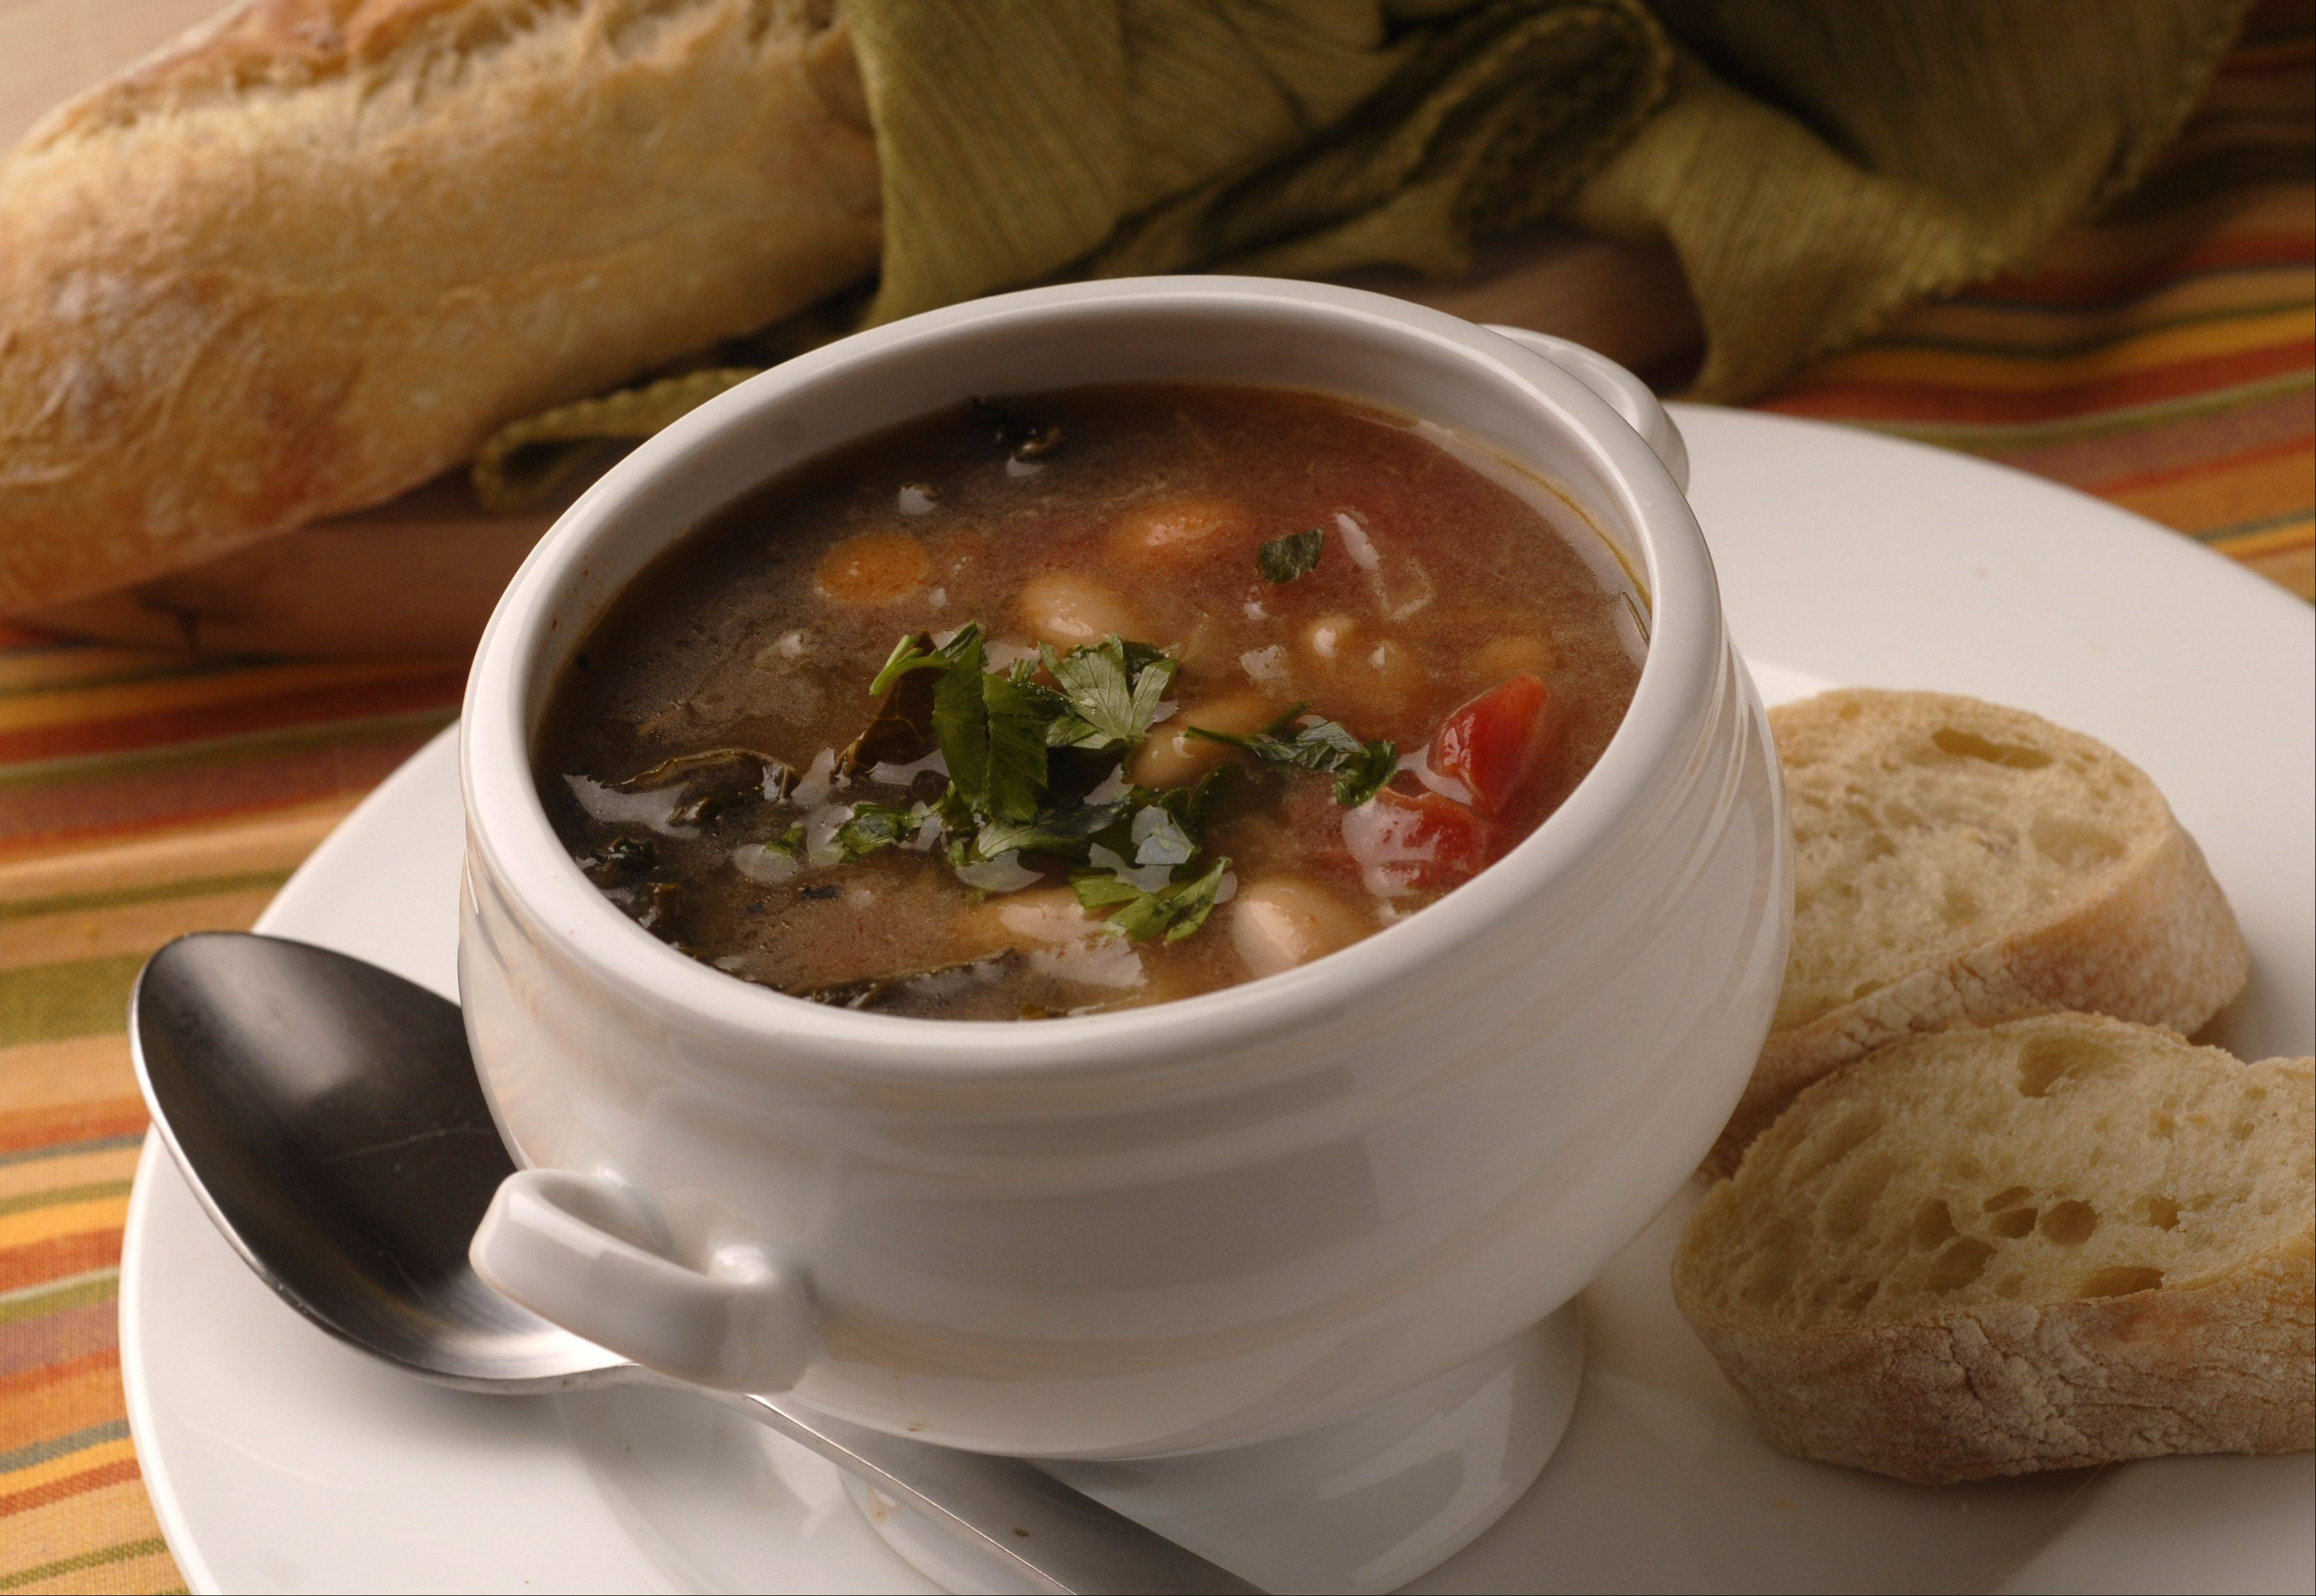 Kale stems and leaves add flavor and nutrients to Tuscan Bean Soup.